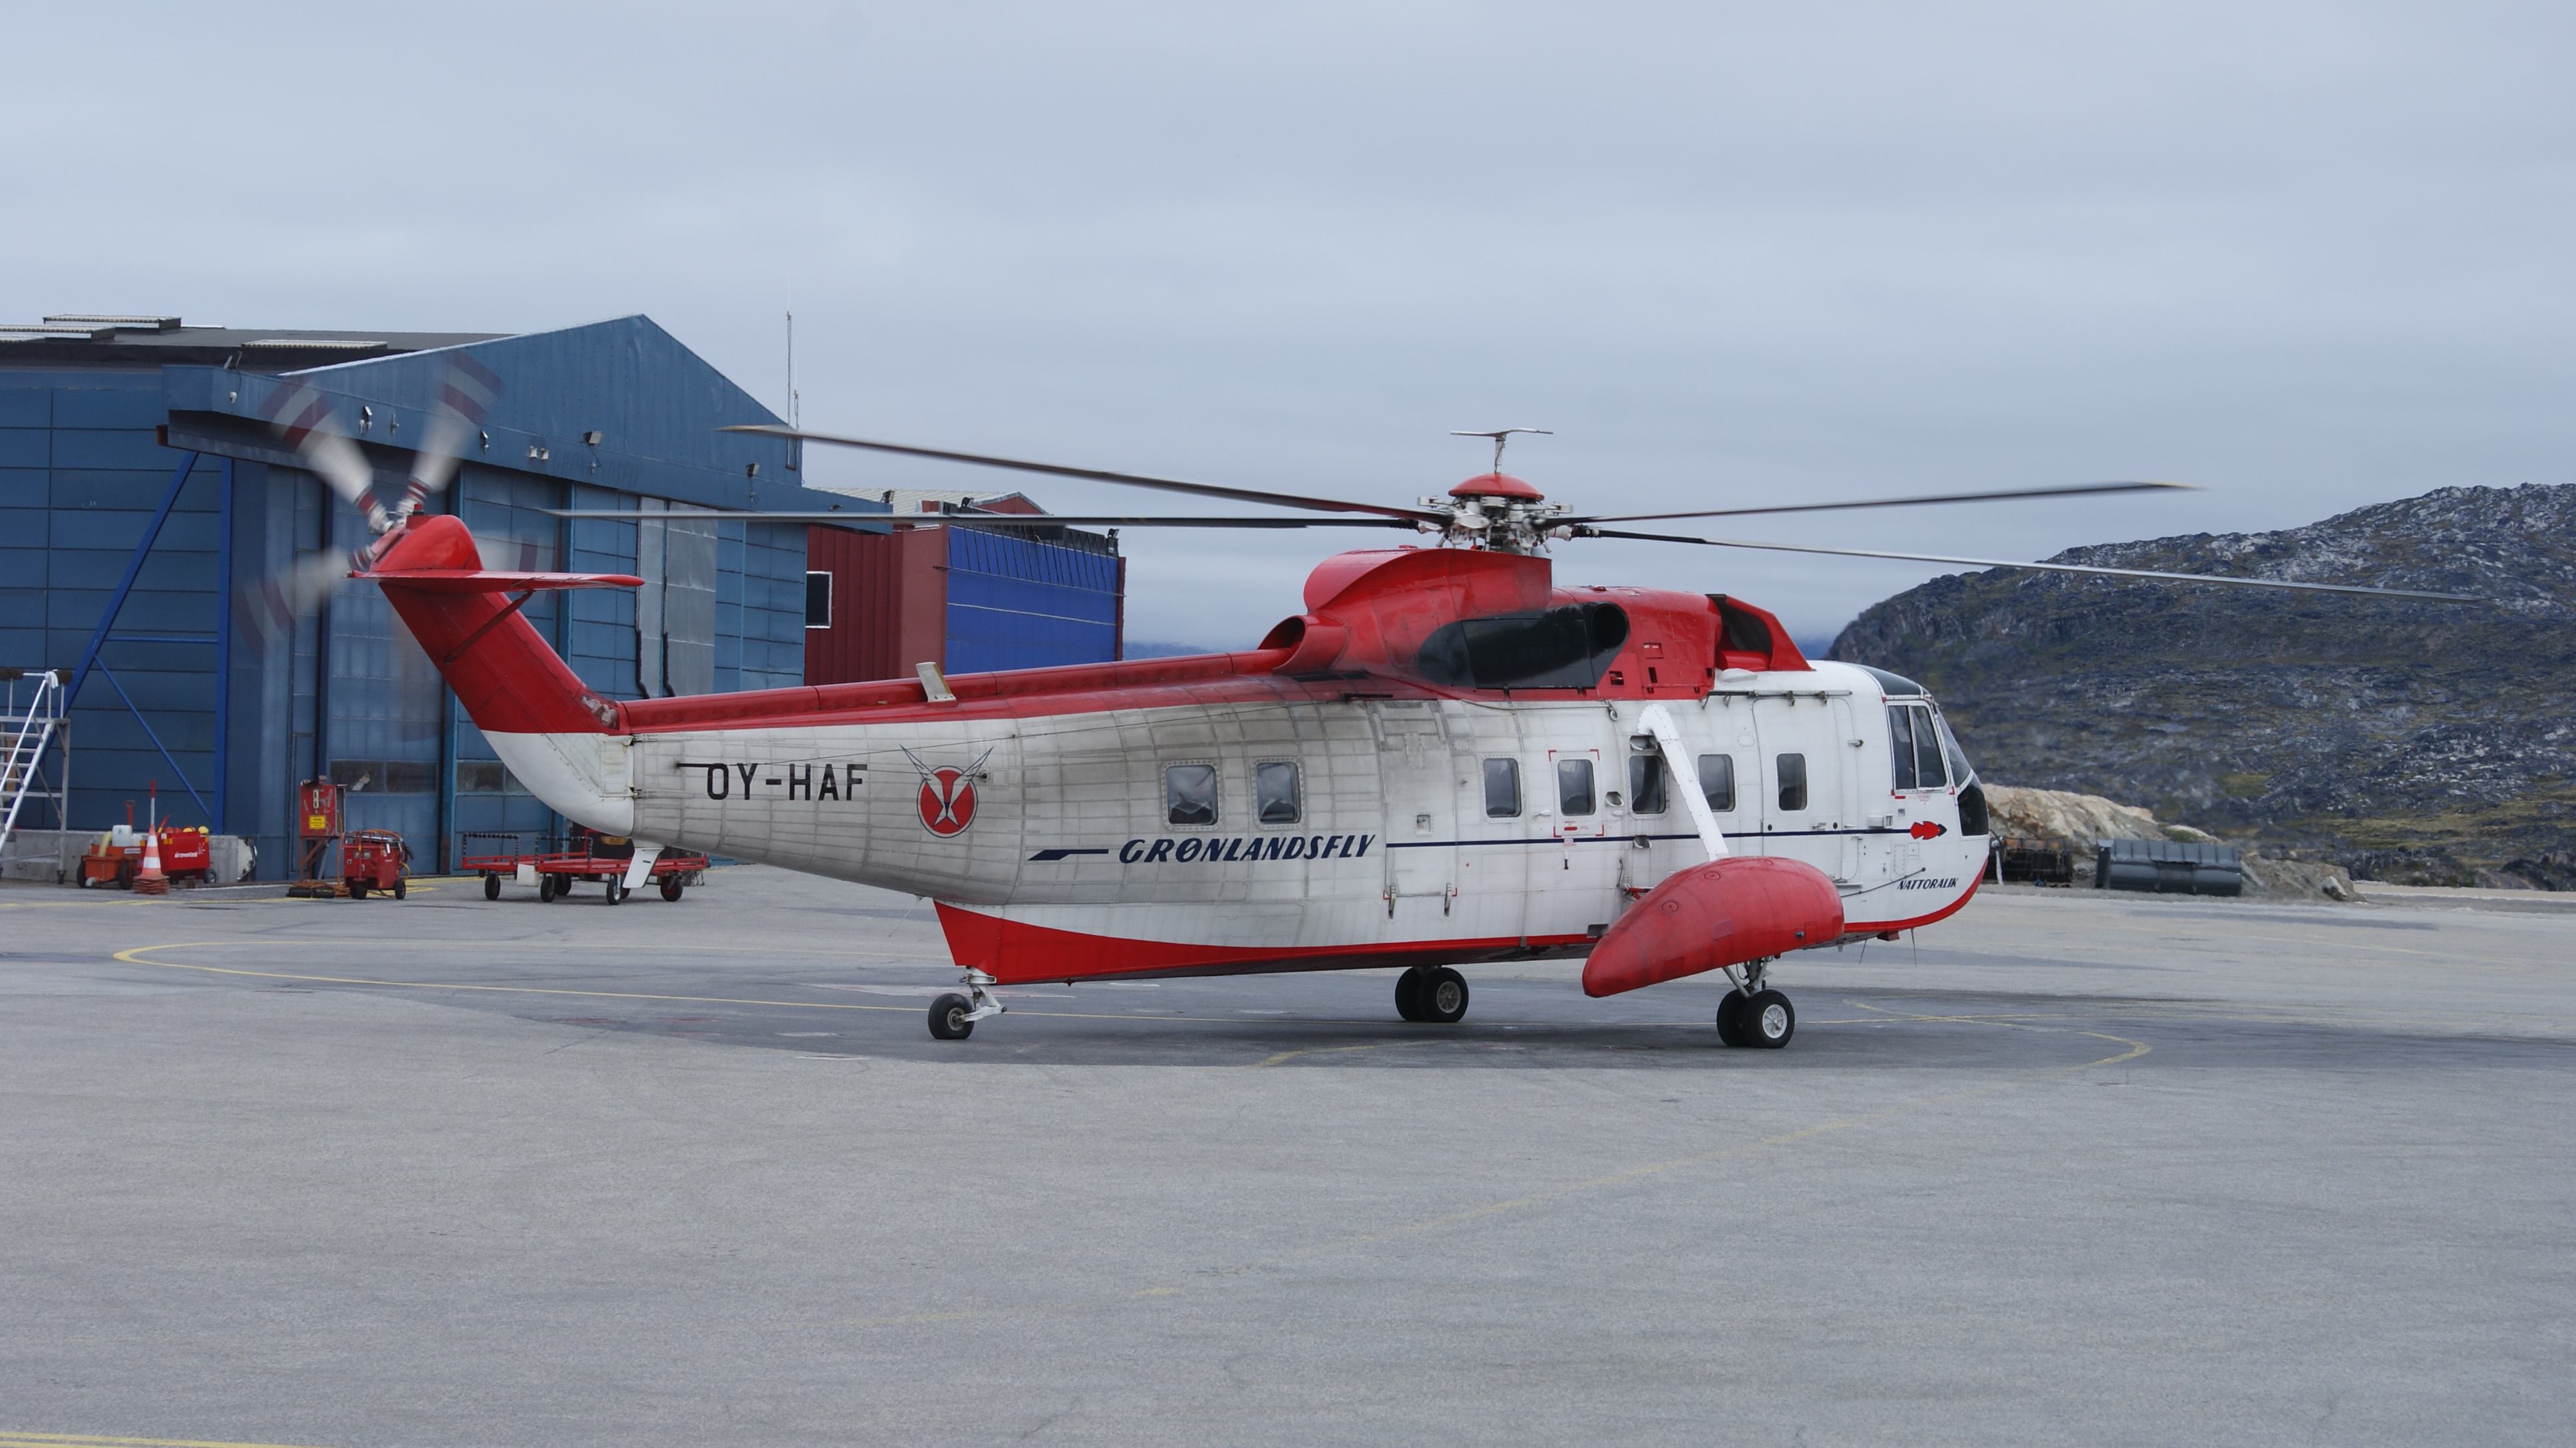 s 61 helicopter with File Ilulissat Airport Air Greenland Sikorsky S61n on 516506650985811284 together with Sikorsky s61n un moreover Sik s 61 further Watch furthermore 217228382001458667.